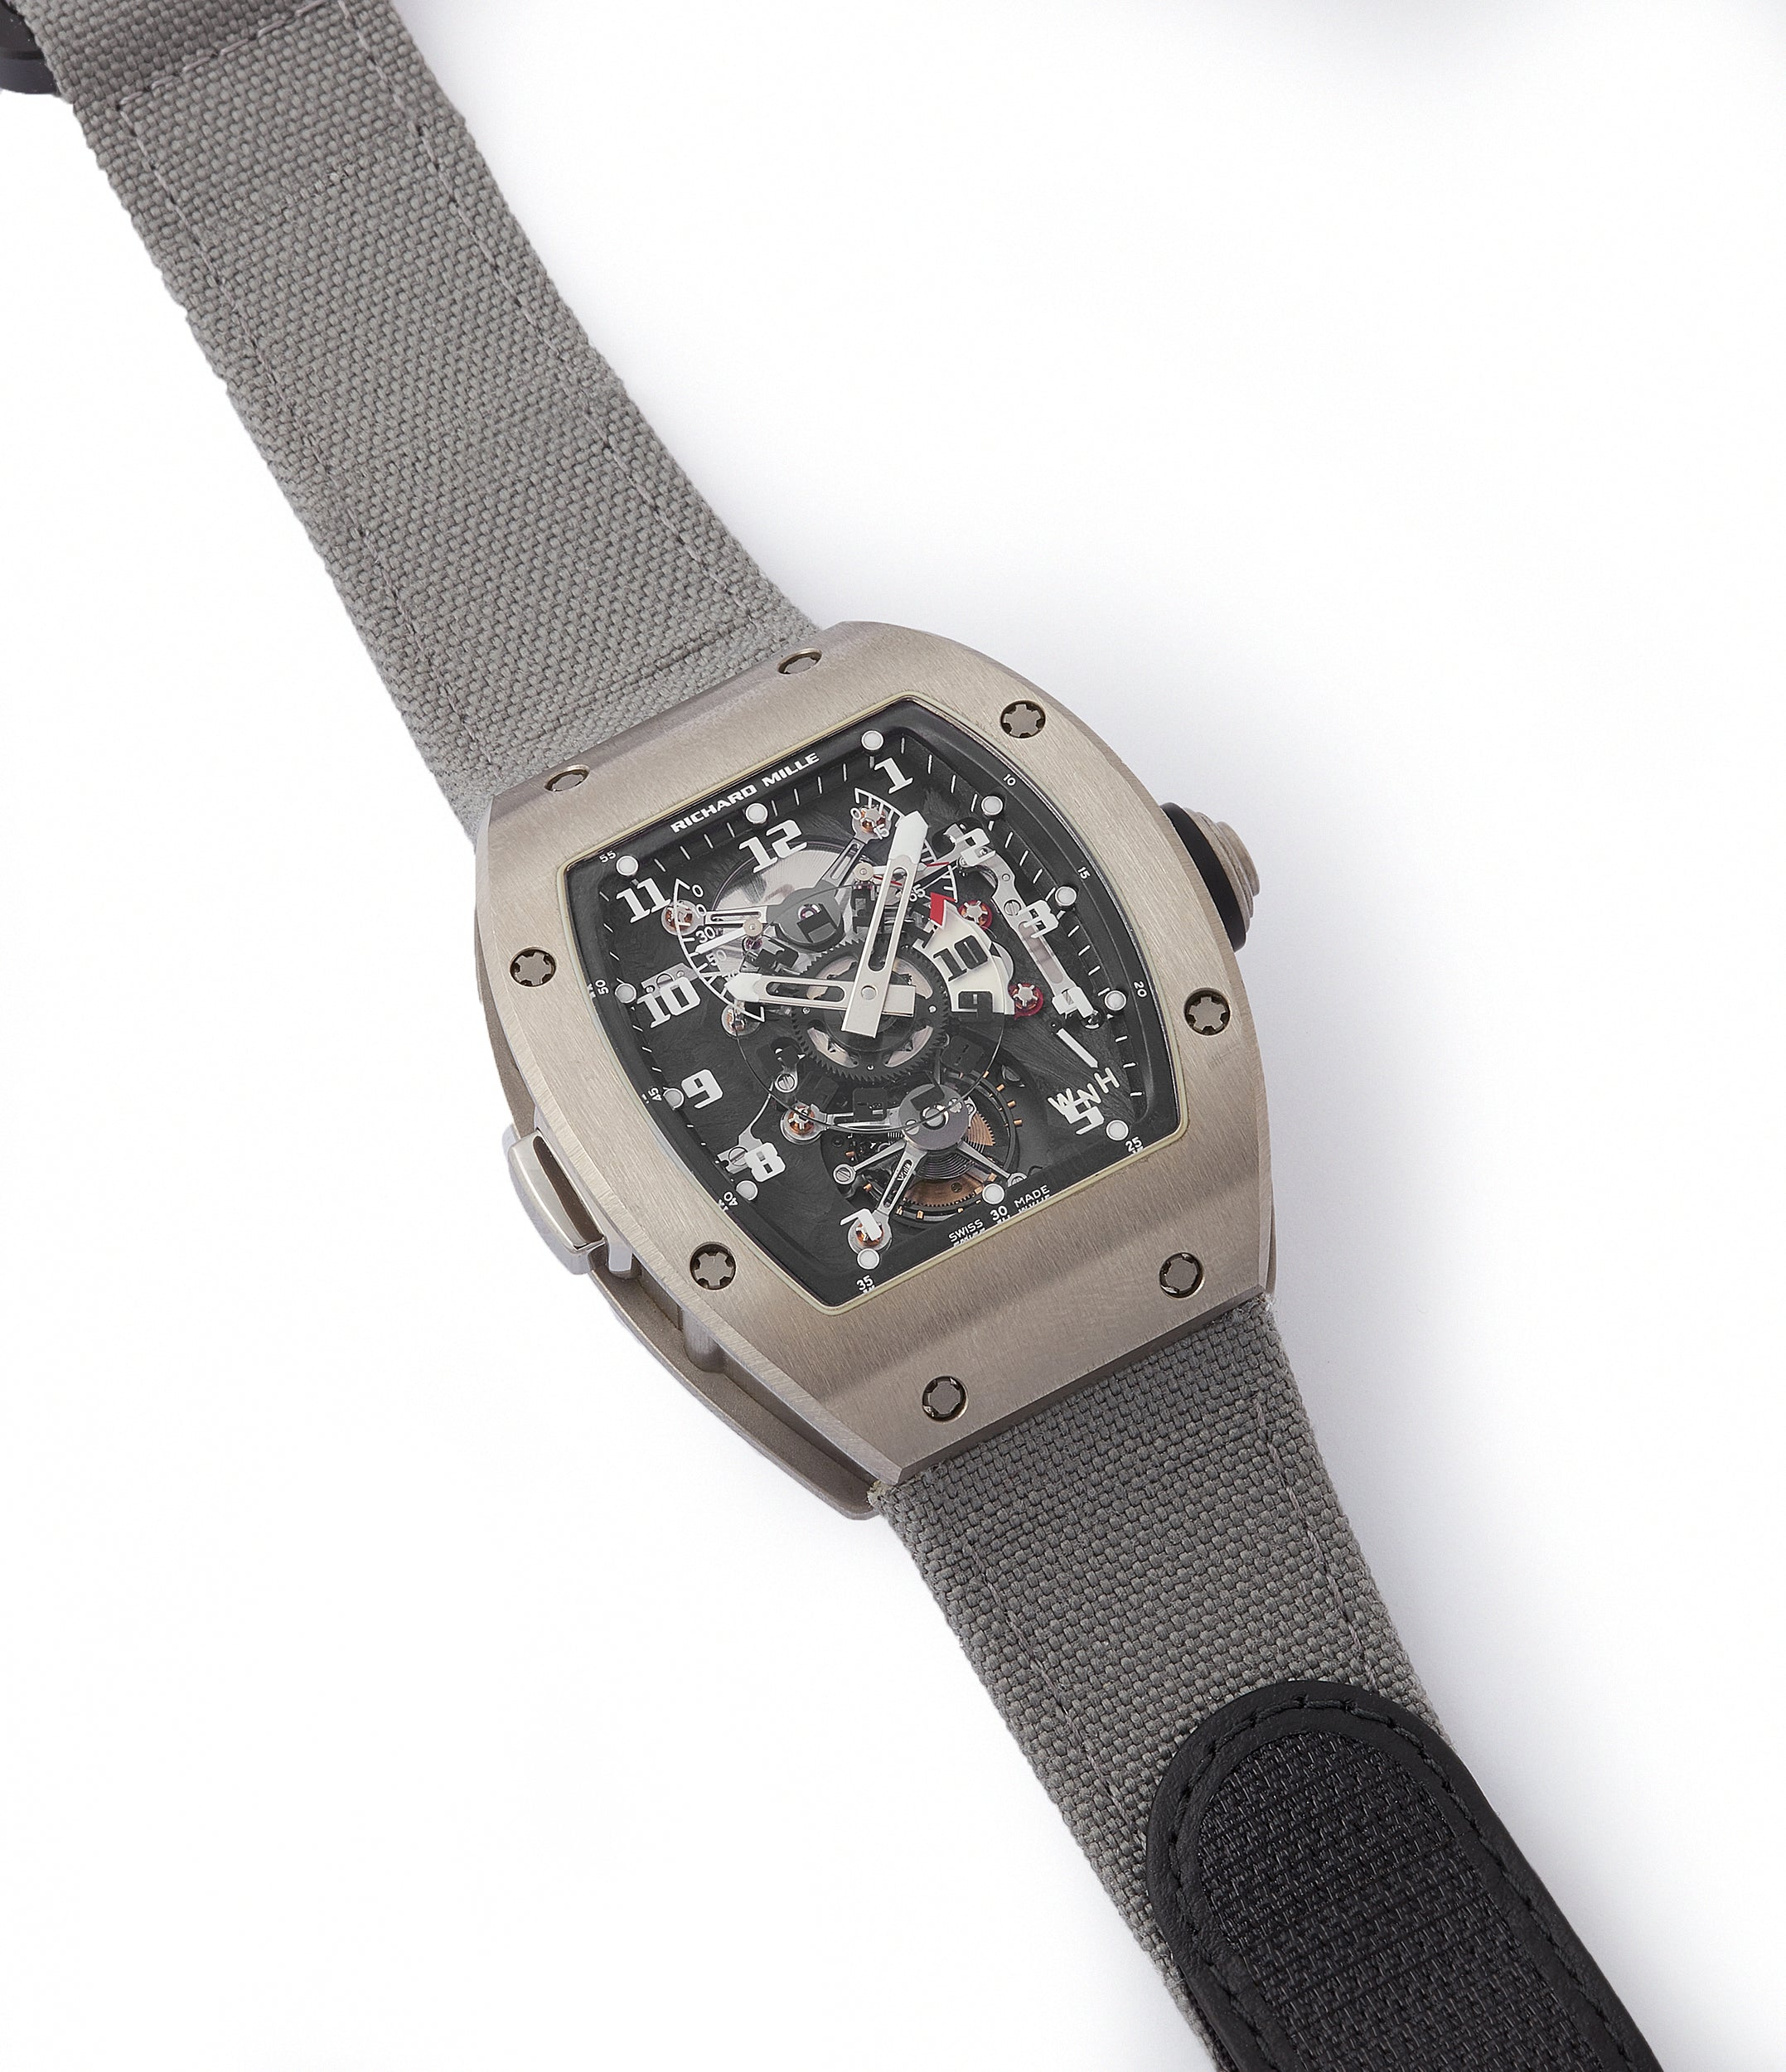 buying Richard Mille RM003-V2 titanium tourbillon dual-time pre-owned rare independent watchmaker sports traveller watch for sale online at A Collected Man London UK specialist of rare watches